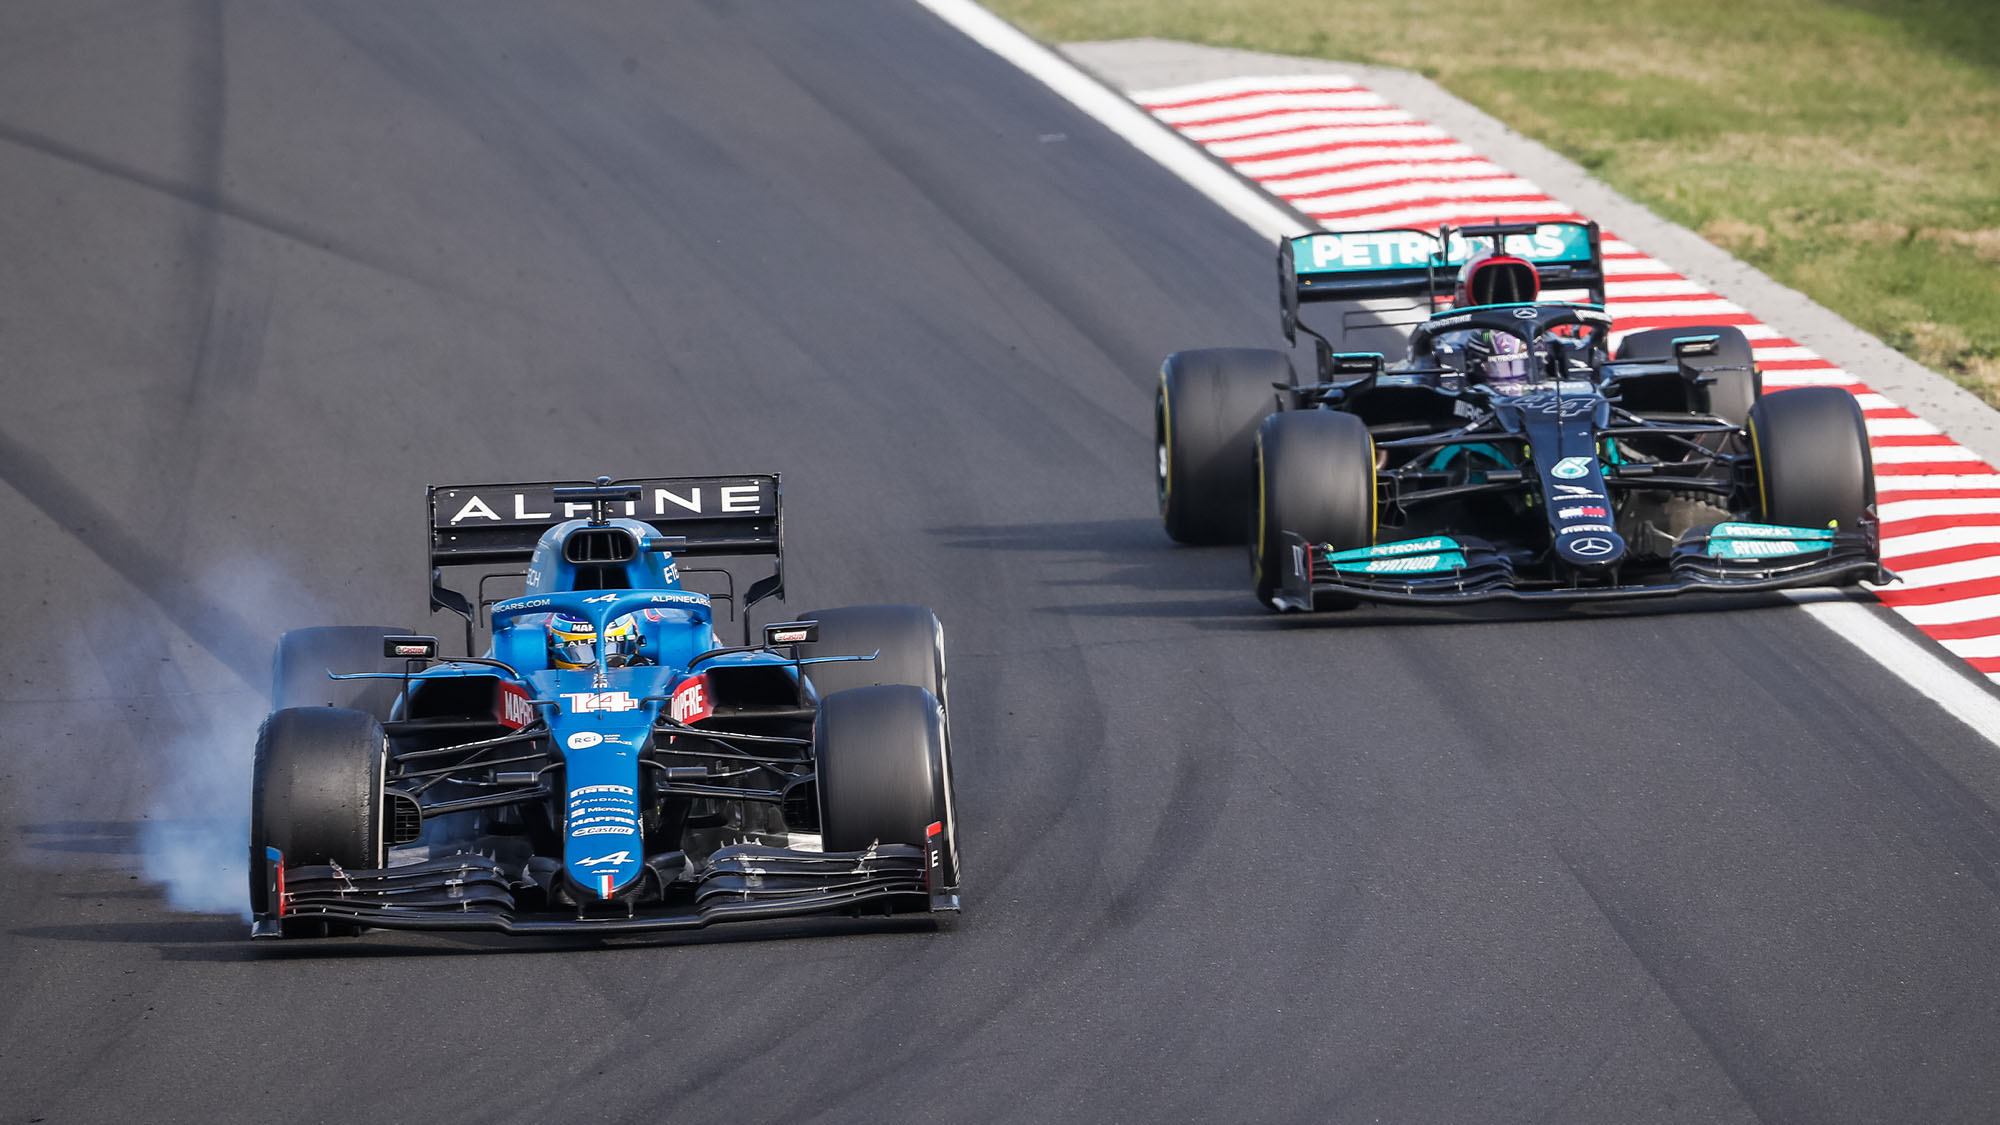 14 ALONSO Fernando (spa), Alpine F1 A521, 44 HAMILTON Lewis (gbr), Mercedes AMG F1 GP W12 E Performance, action during the Formula 1 Magyar Nagydij 2021, Hungarian Grand Prix, 11th round of the 2021 FIA Formula One World Championship from July 30 to August 1, 2021 on the Hungaroring, in Mogyorod, near Budapest, Hungary - Photo Antonin Vincent / DPPI